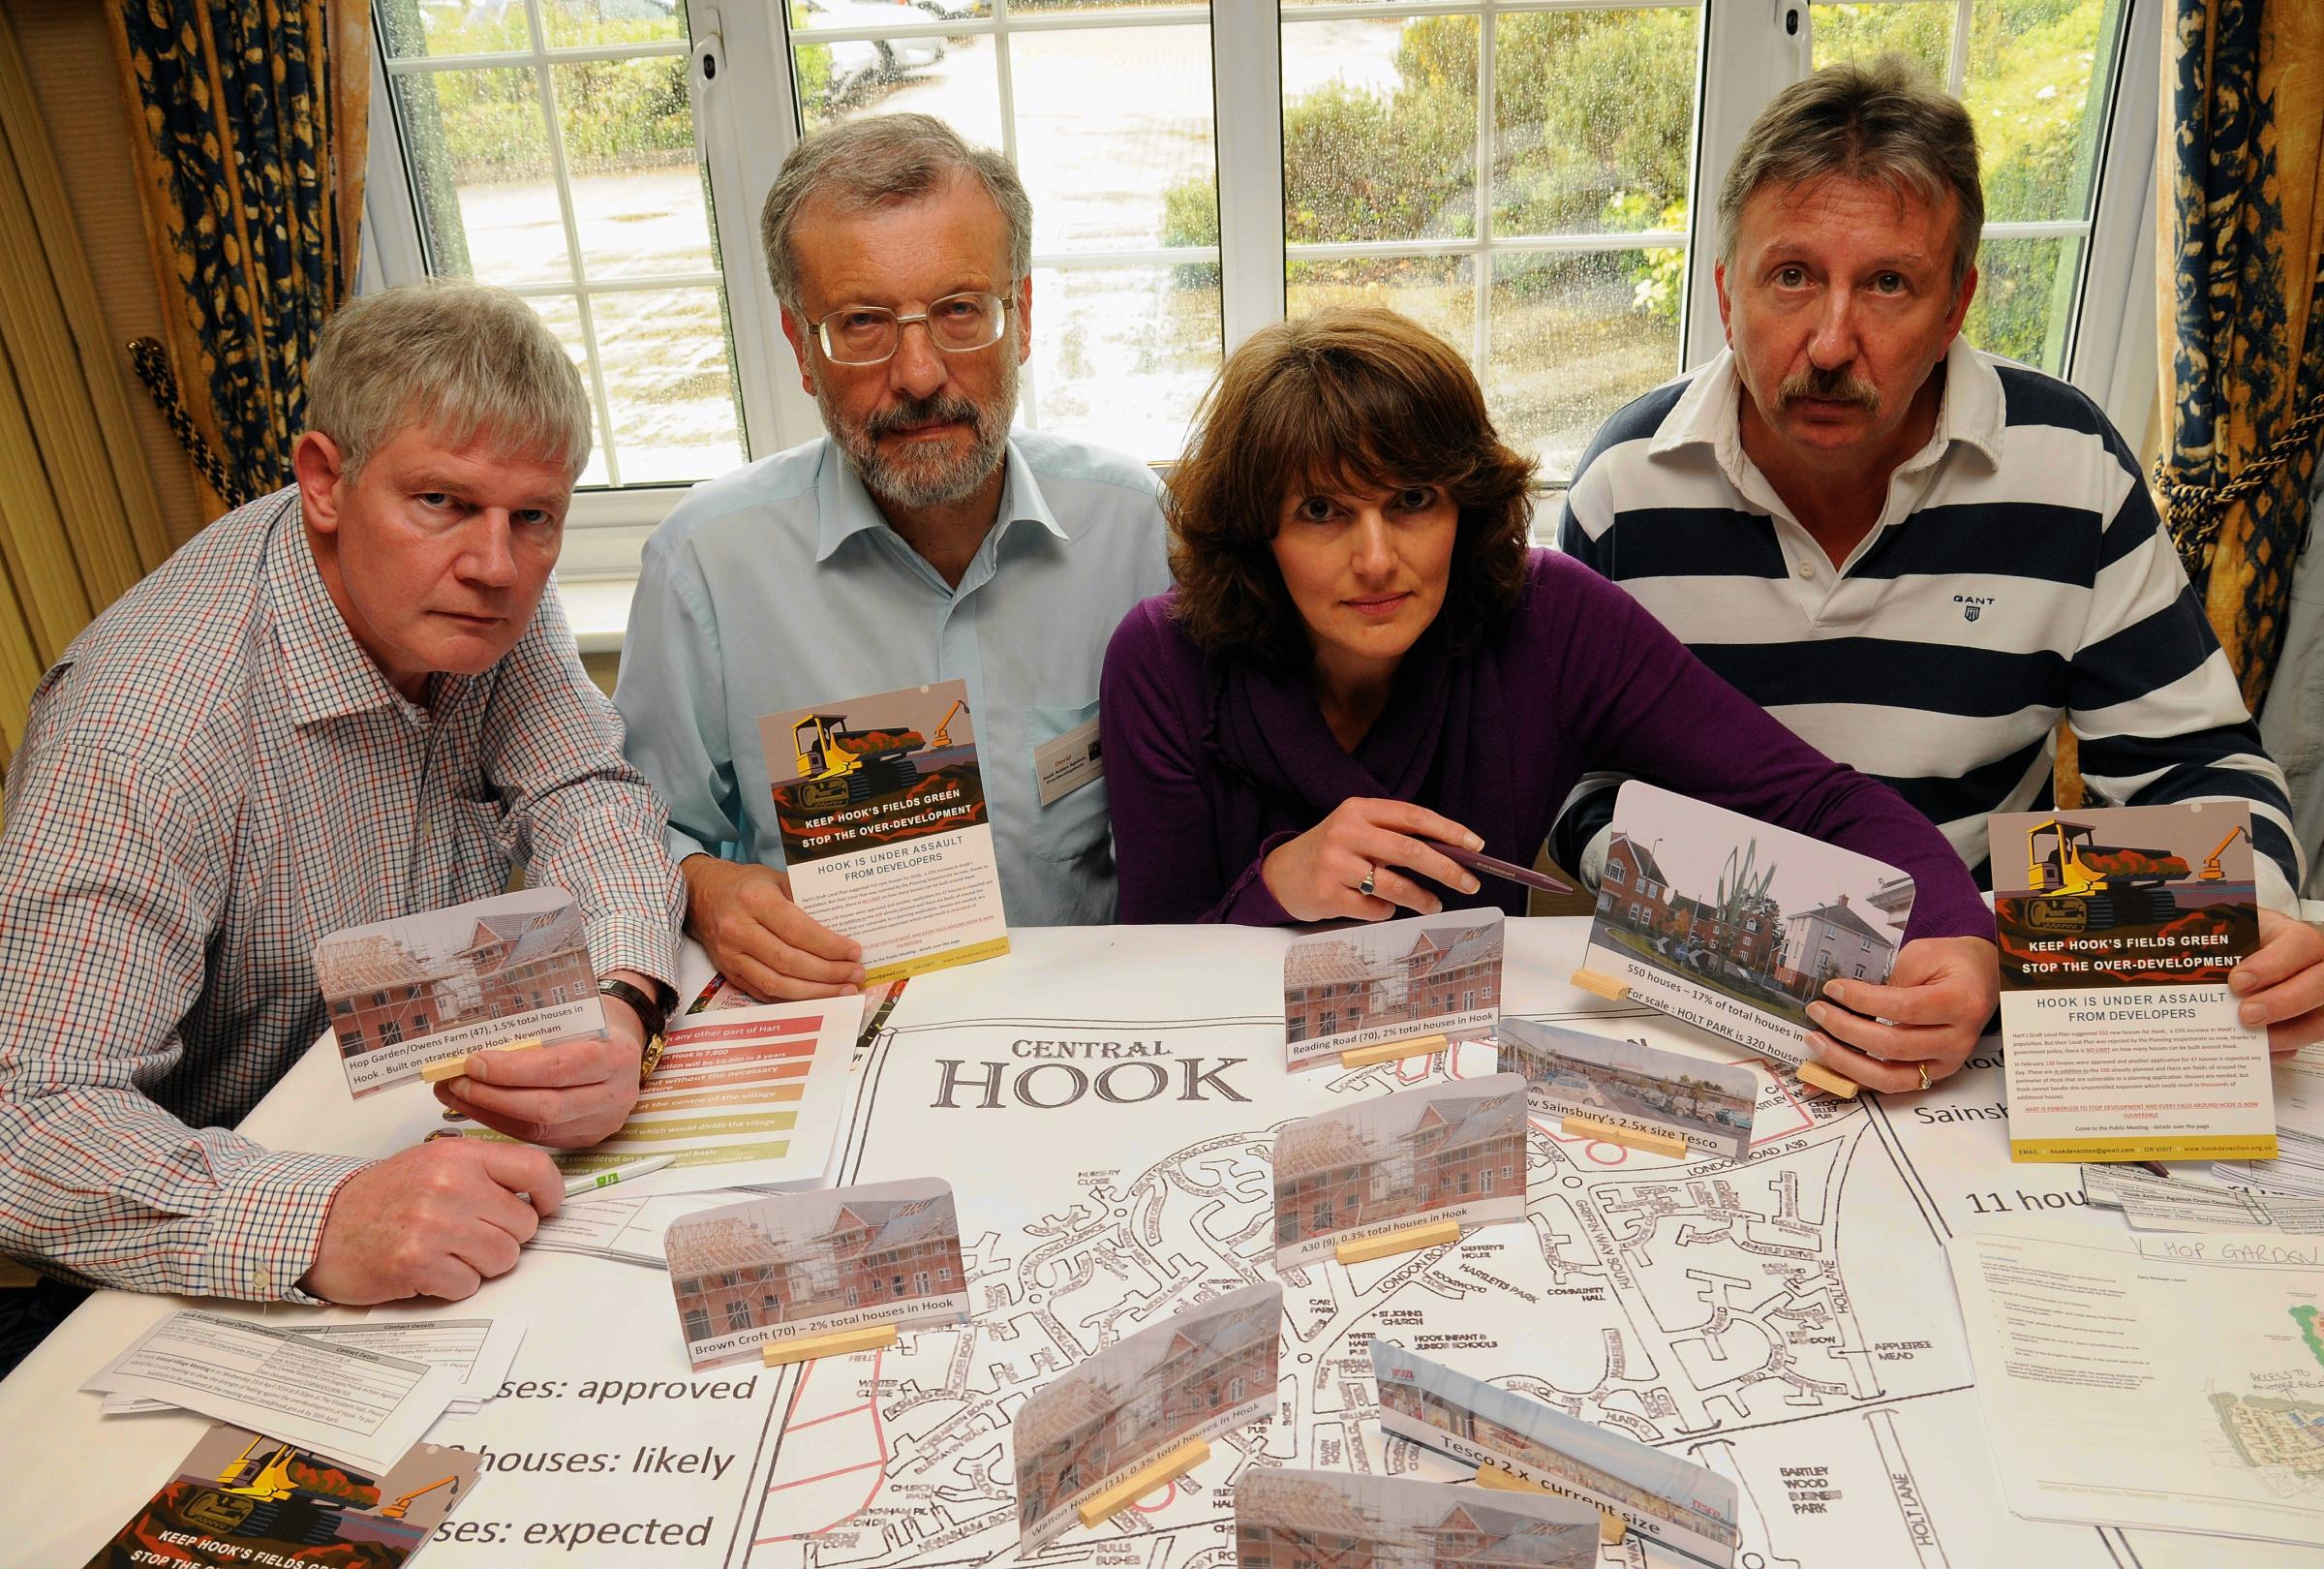 Nick Charles, Dave Lawrence, Sue Mesher and Steve Mesher, who are against over-development in Hook, take a look at the plans